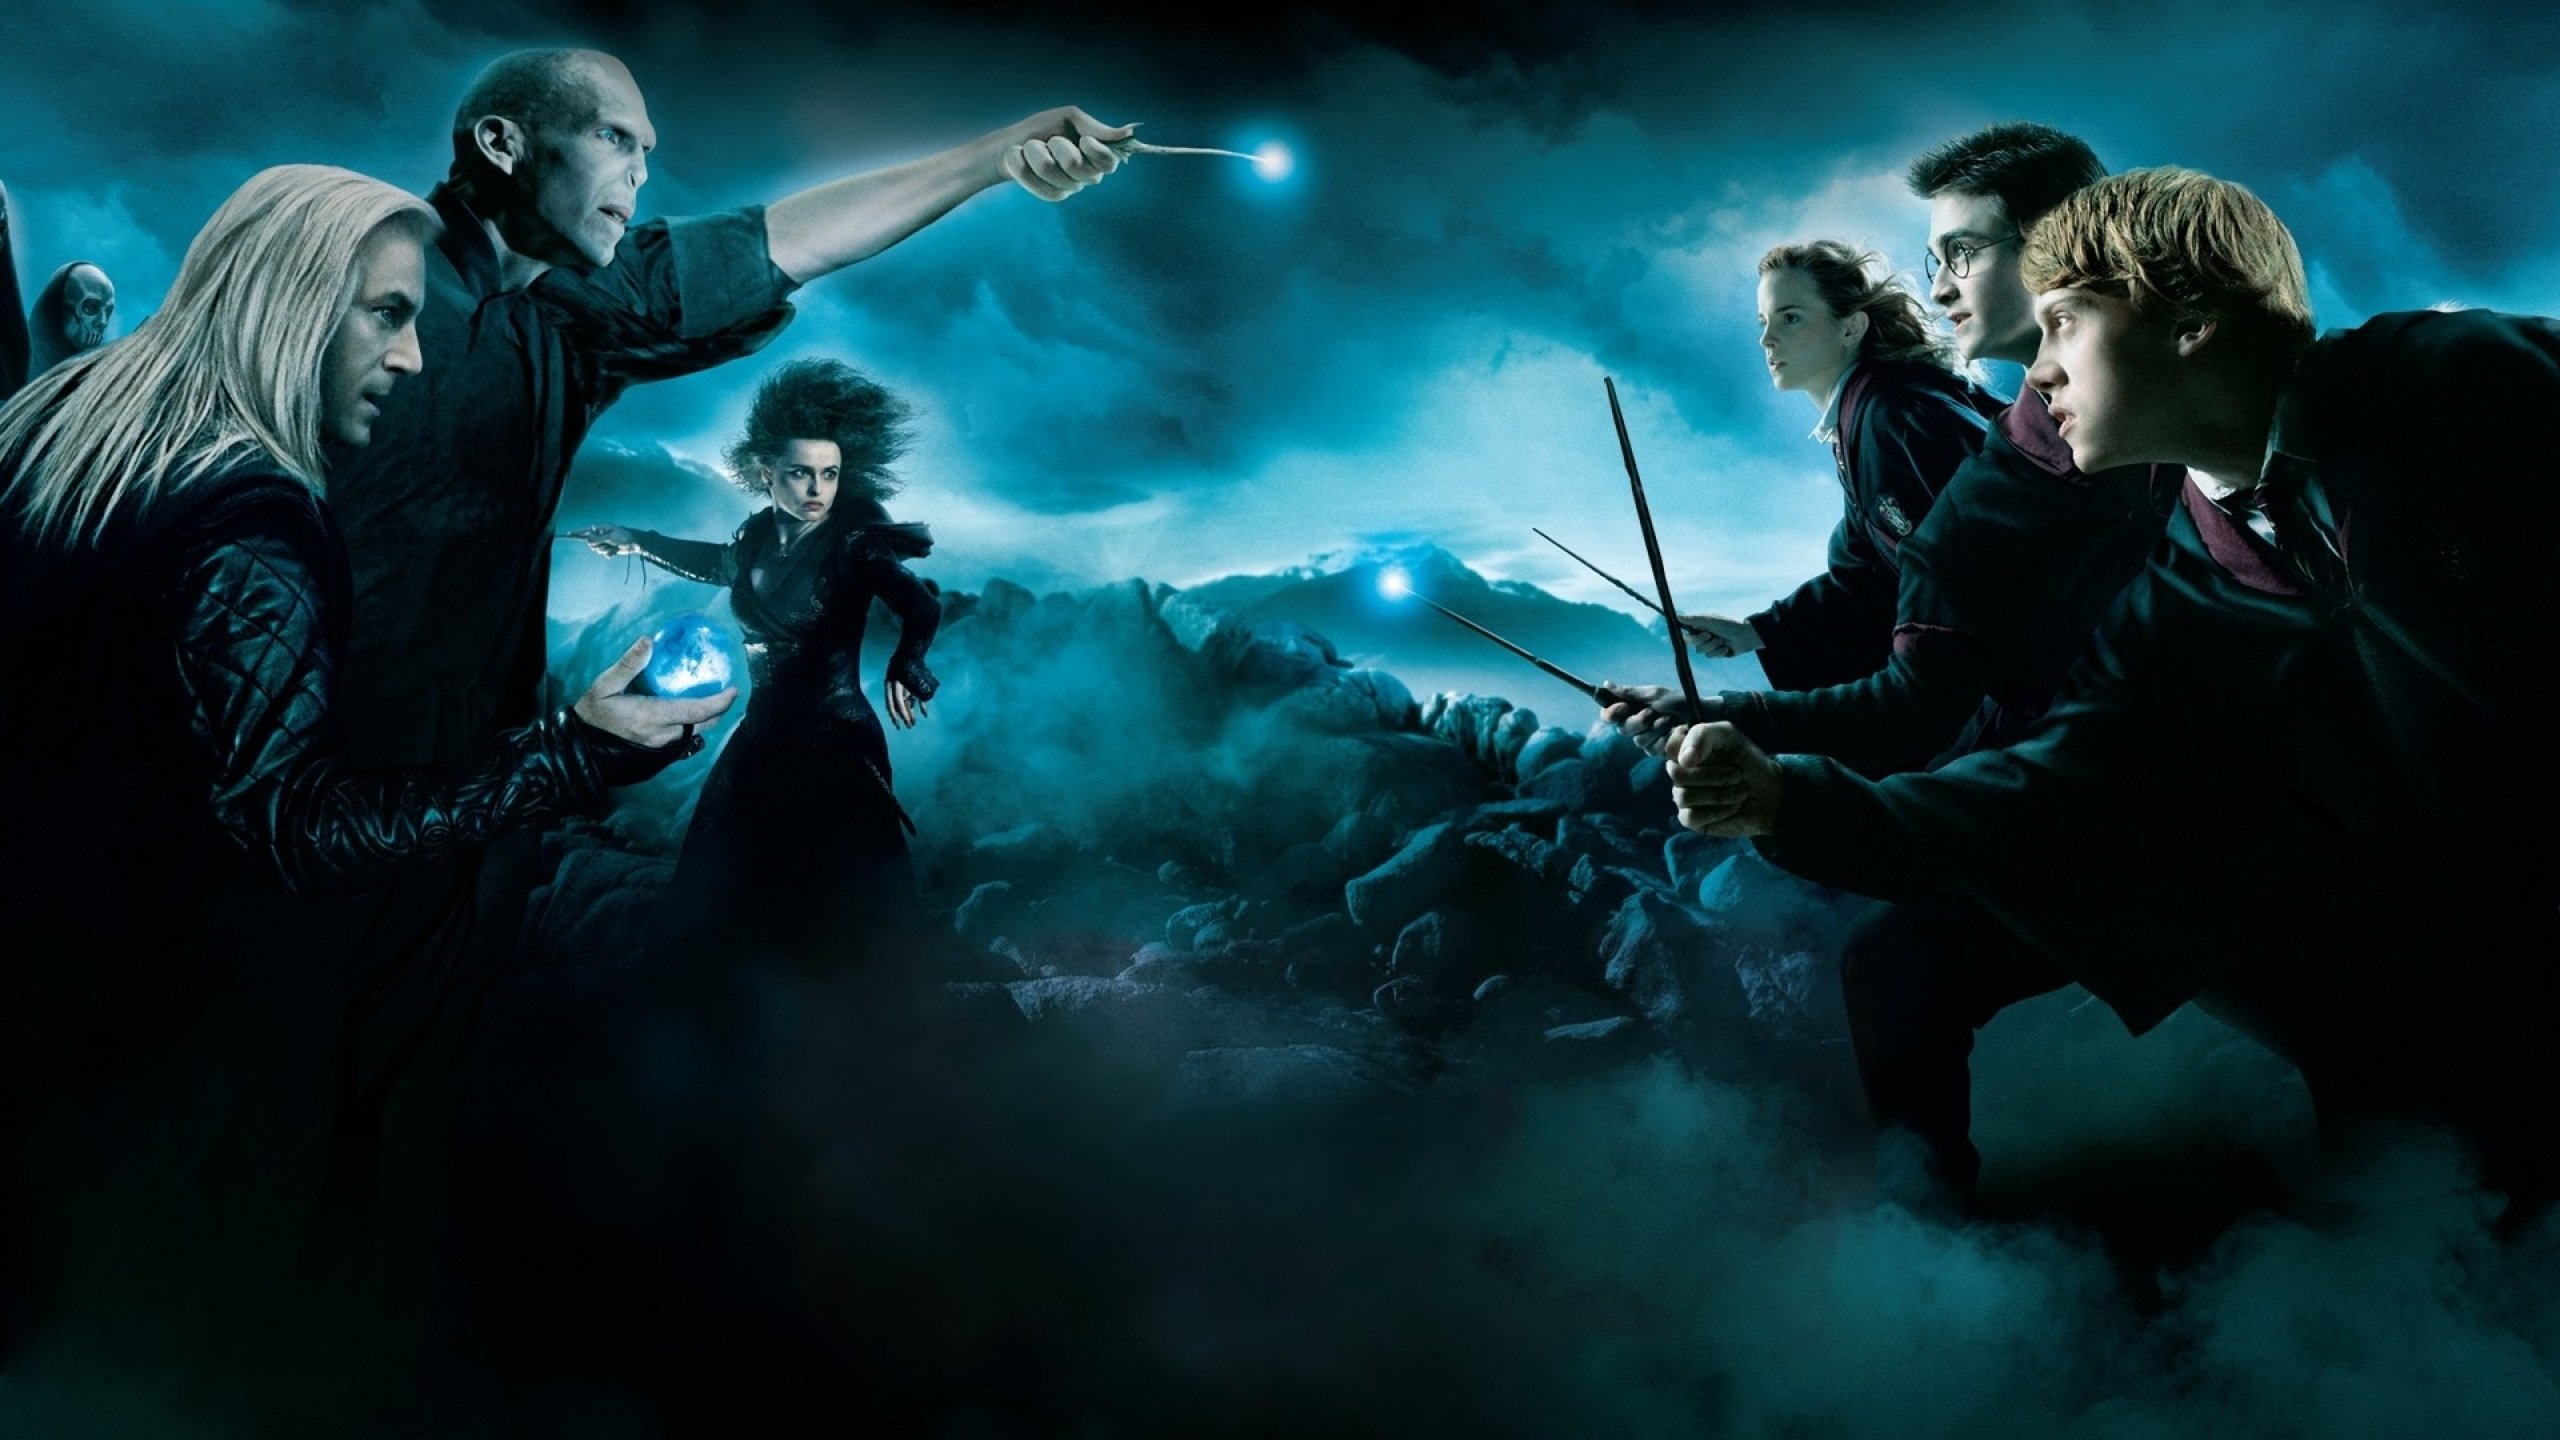 Harry Potter Free Hd Wallpapers Download